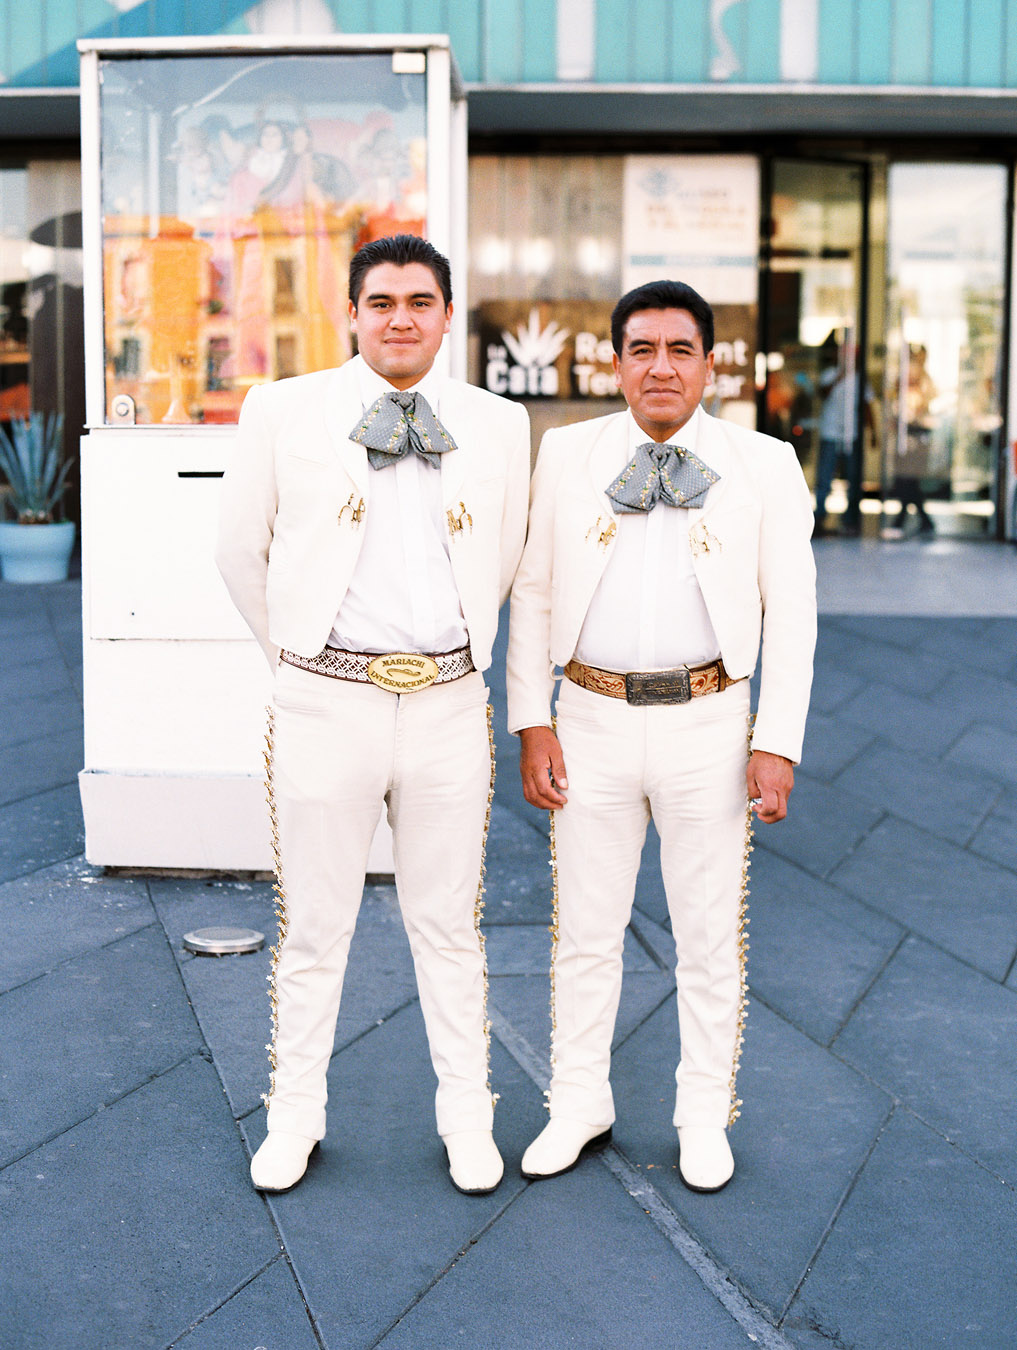 Portraits of mariachi of Plaza Garibaldi in Mexico City